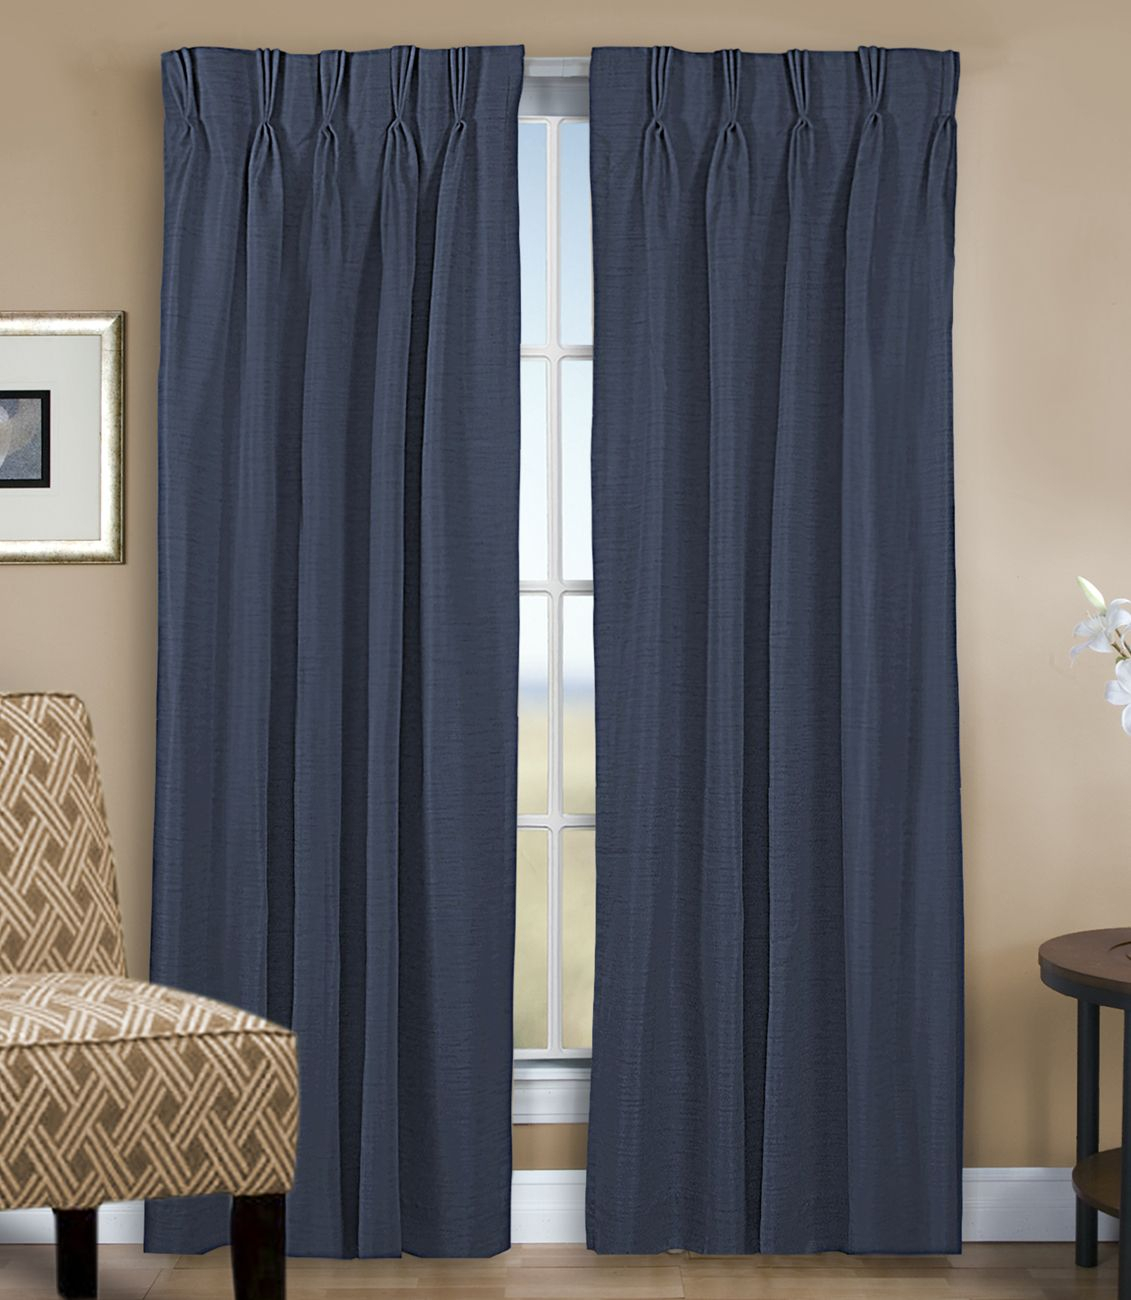 Grasscloth Lined Pinch Pleated (dual Header) Drapery Pair Throughout Double Pinch Pleat Top Curtain Panel Pairs (View 9 of 20)